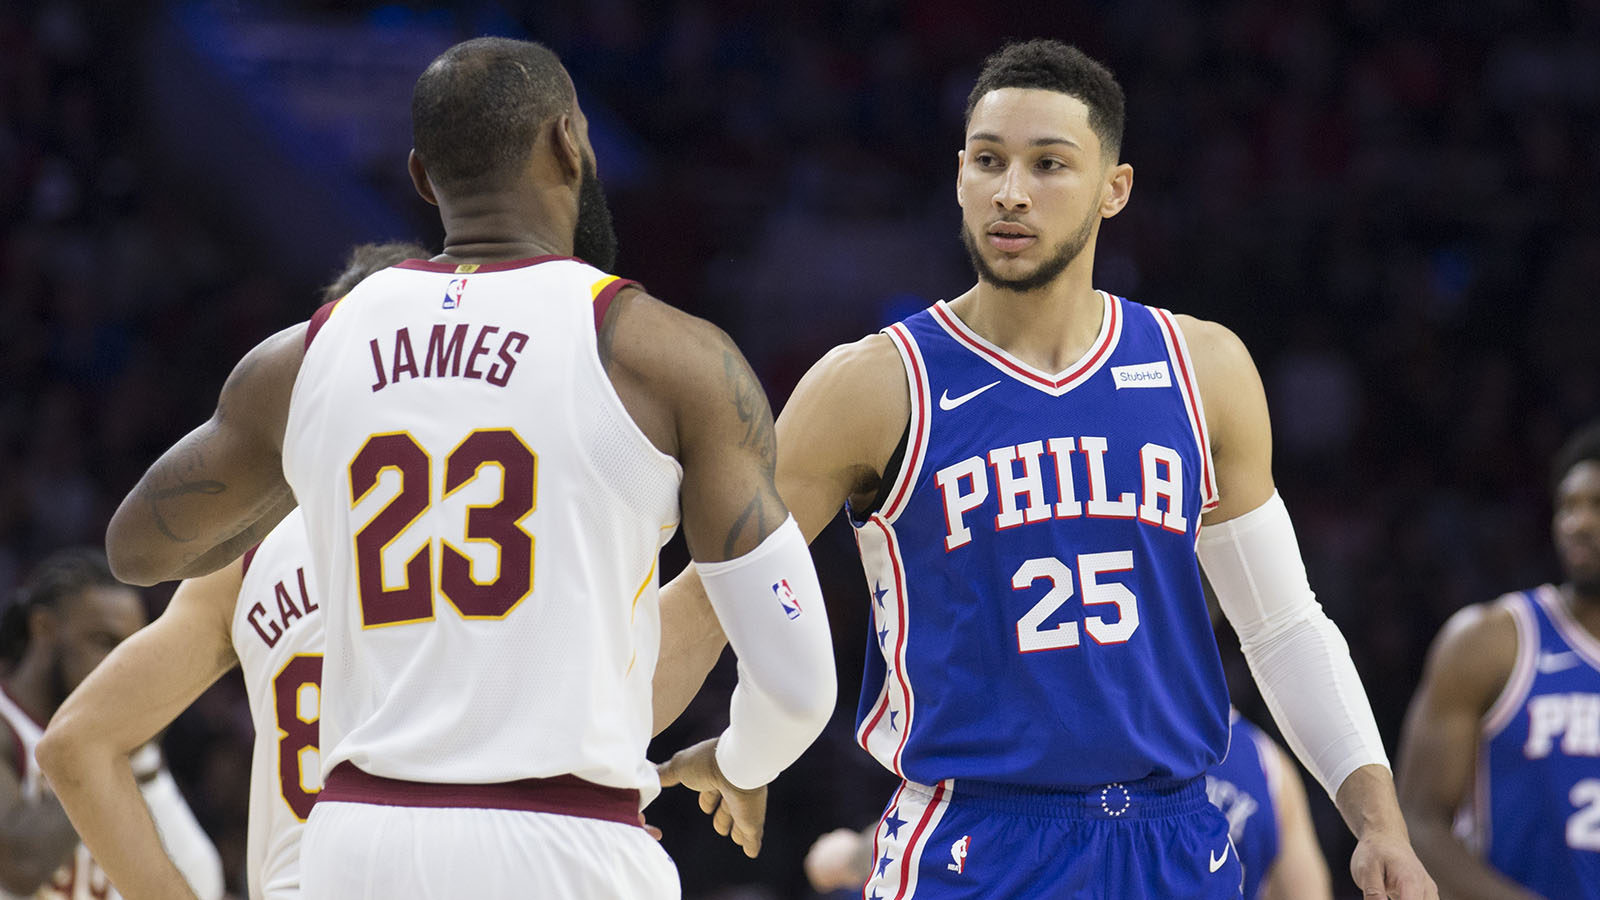 wholesale dealer 94711 b9622 Ben Simmons stole the show during the NBA All-Star Game ...